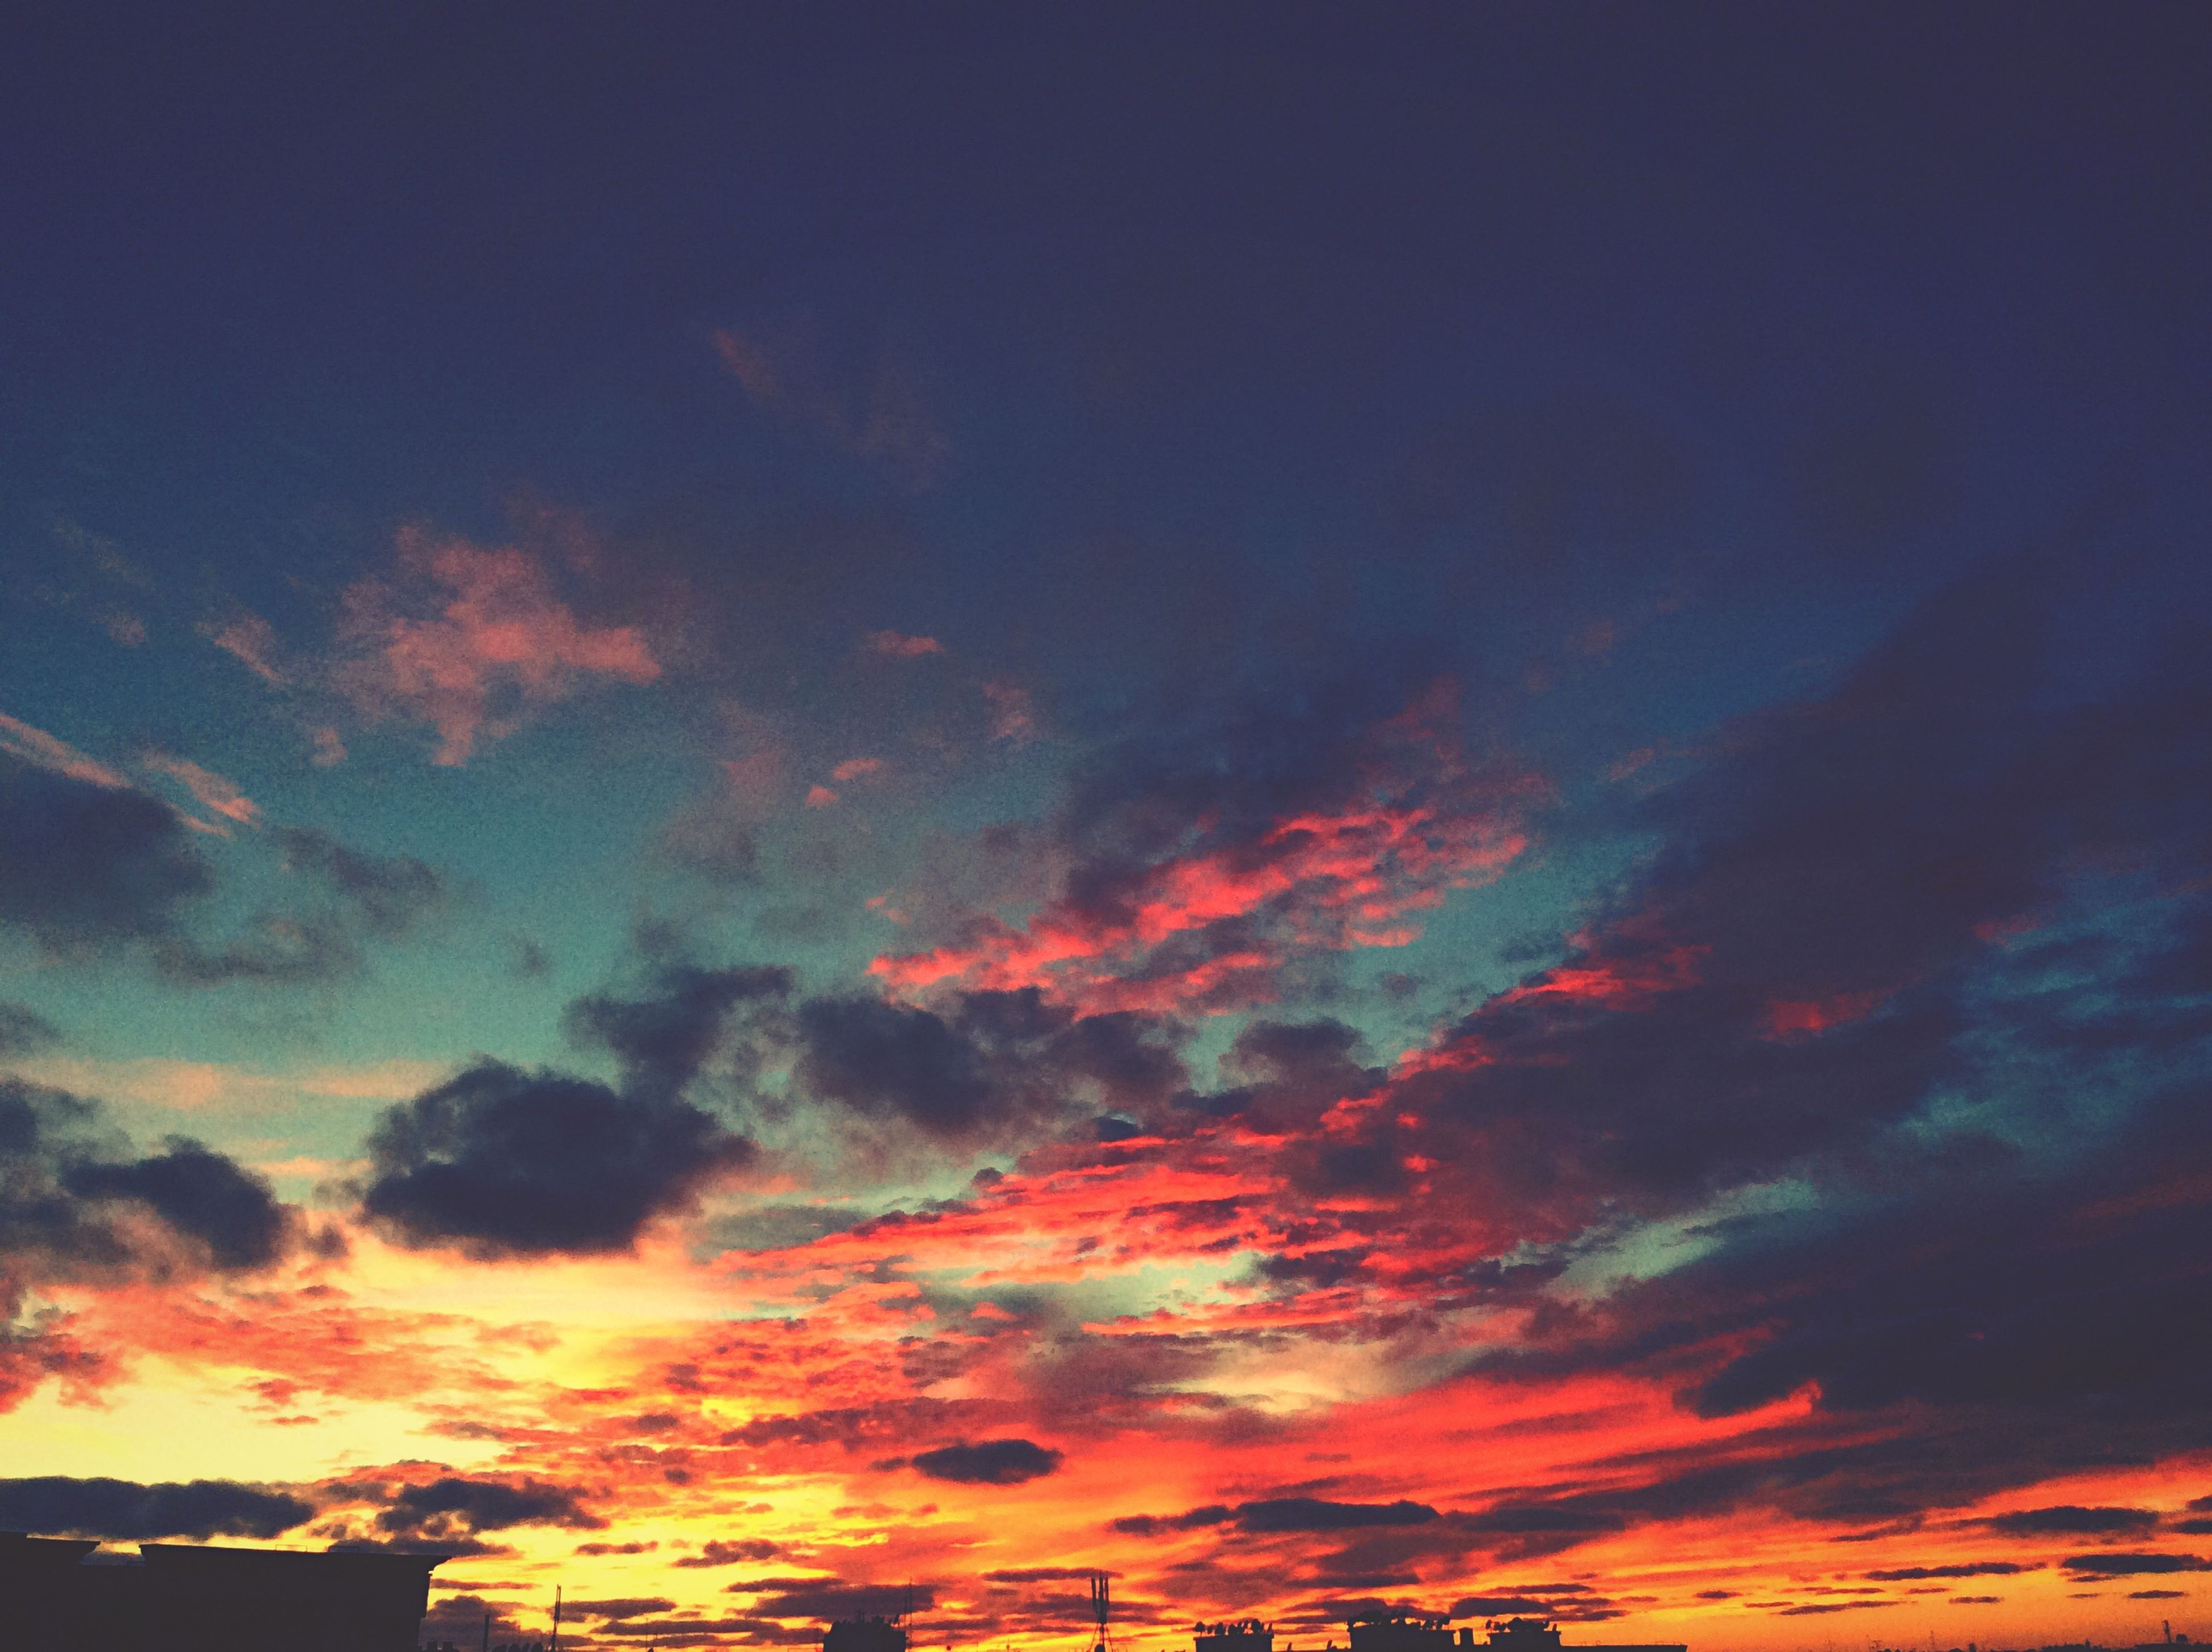 sky, sunset, beauty in nature, orange color, low angle view, cloud - sky, scenics, tranquility, dramatic sky, tranquil scene, nature, cloudy, idyllic, backgrounds, cloud, cloudscape, sky only, outdoors, majestic, weather